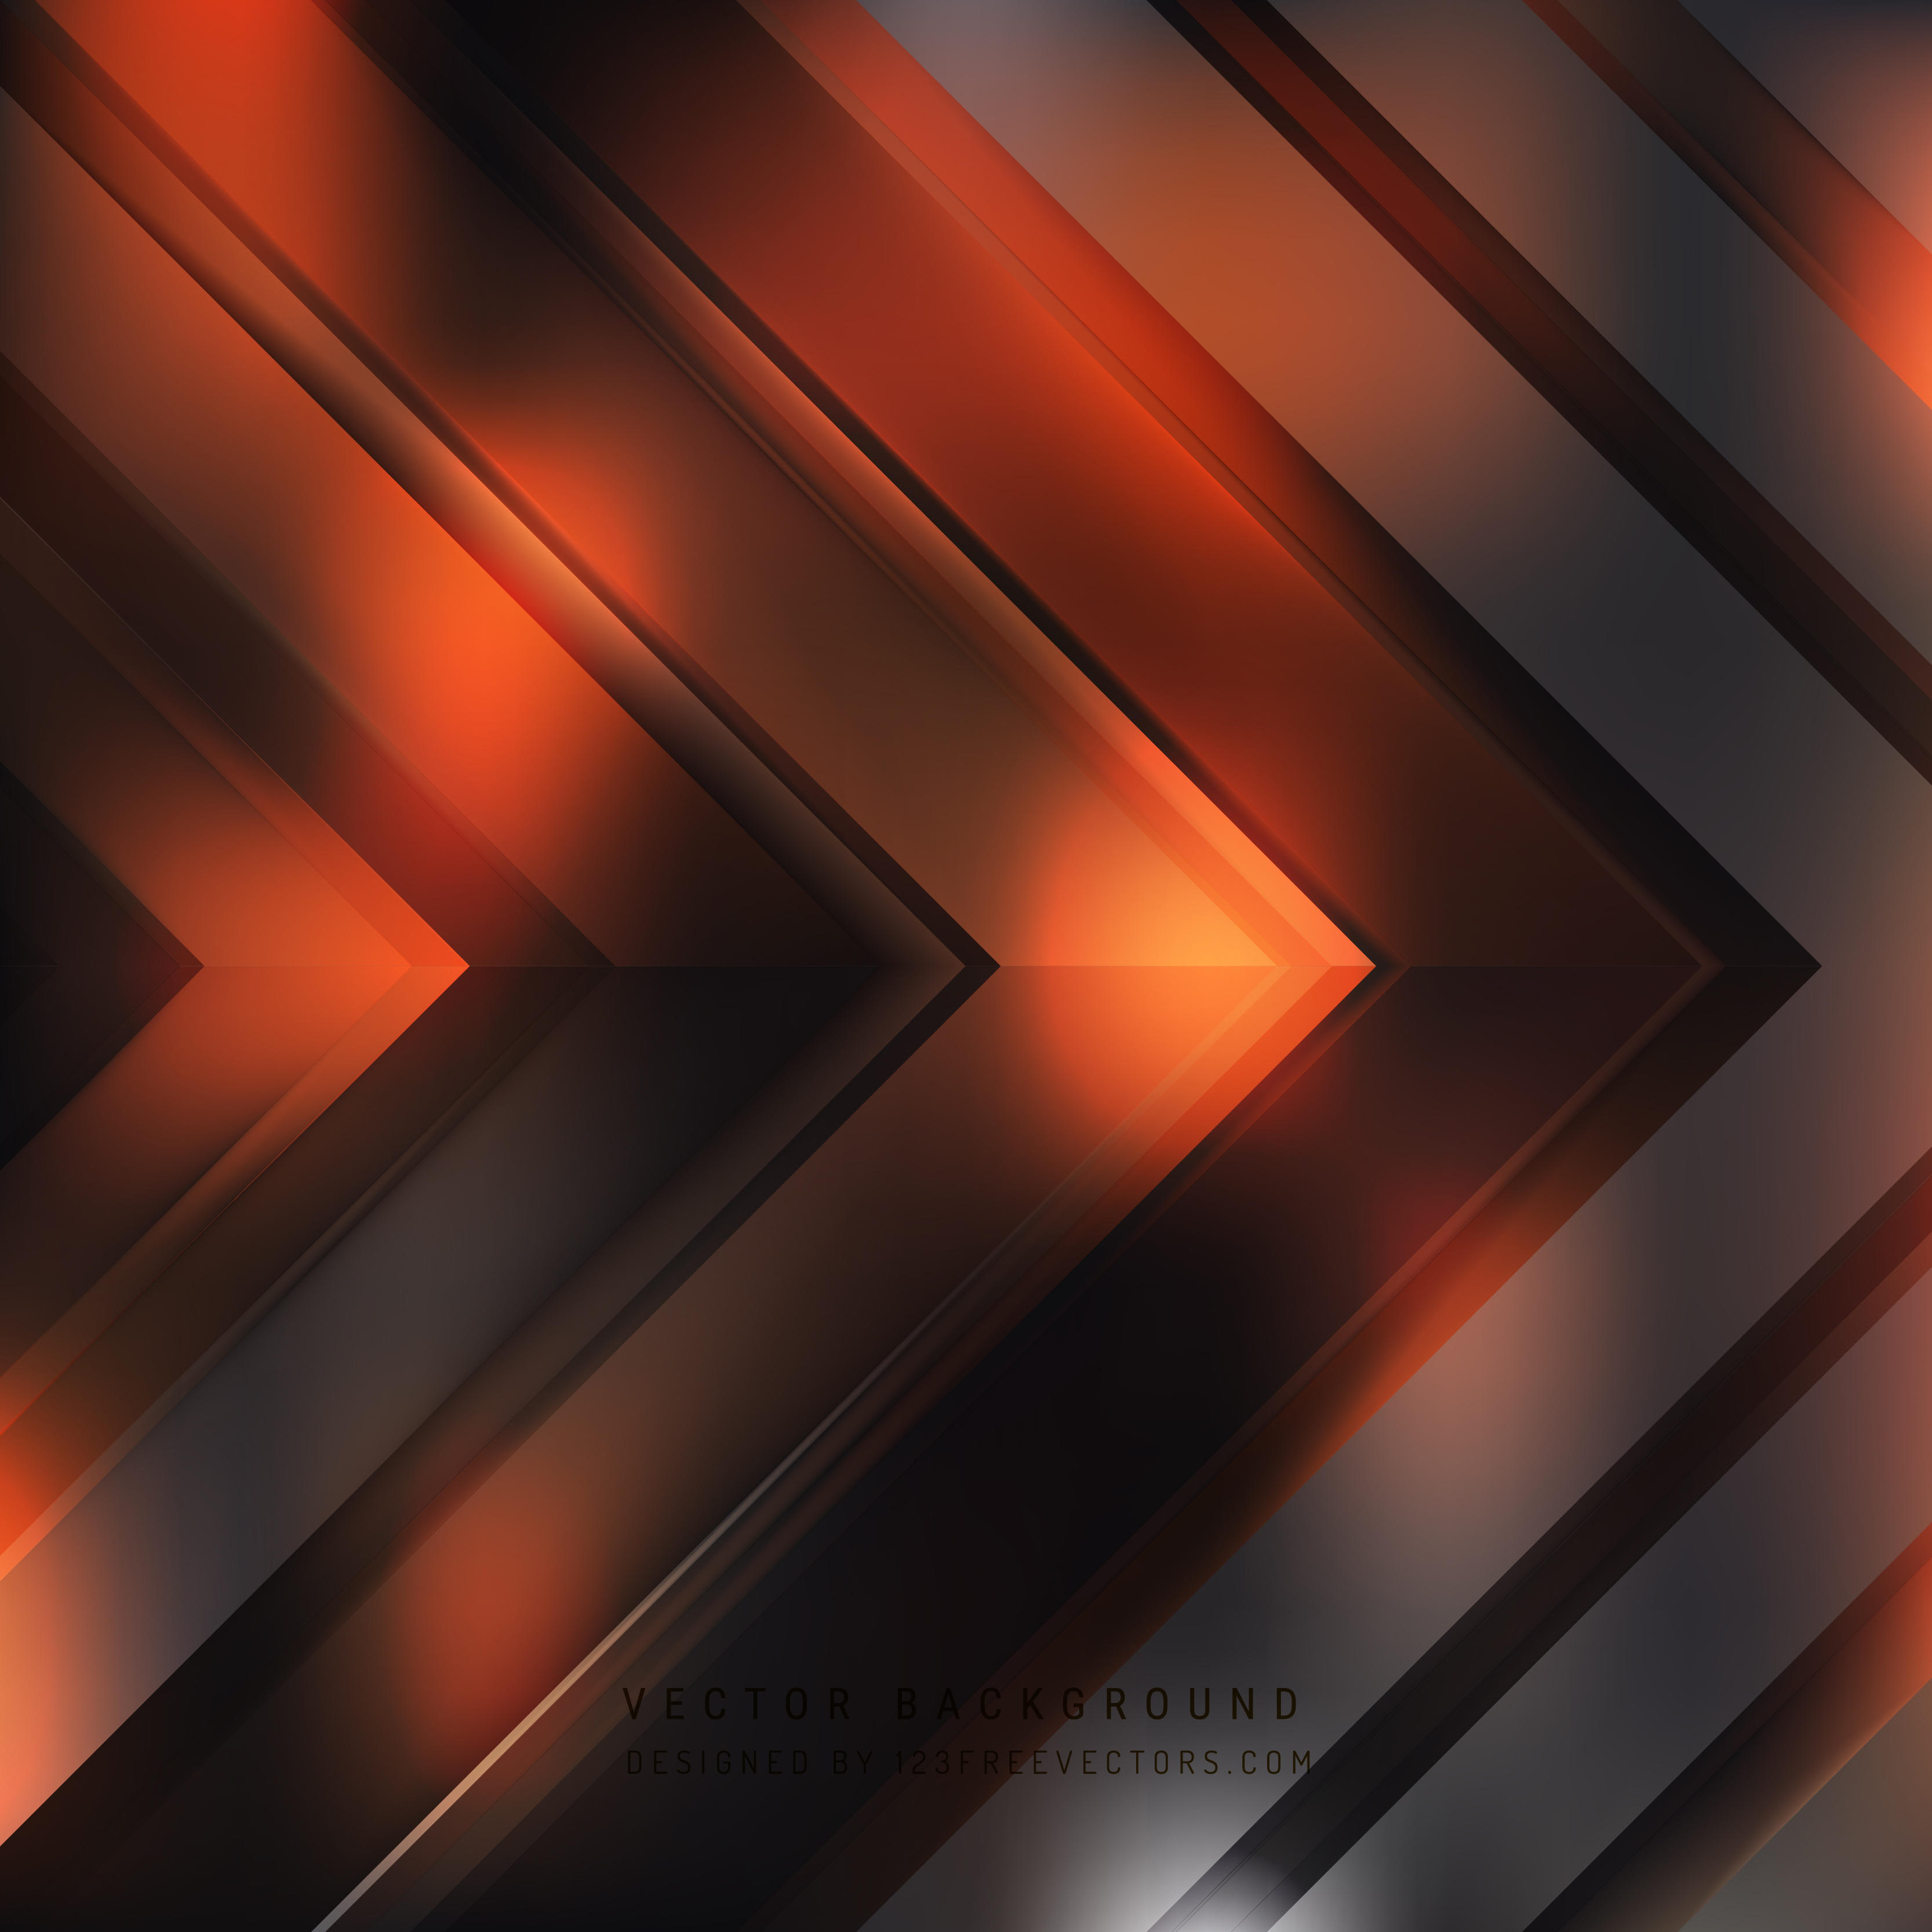 Abstract Black Orange Arrow Background Template